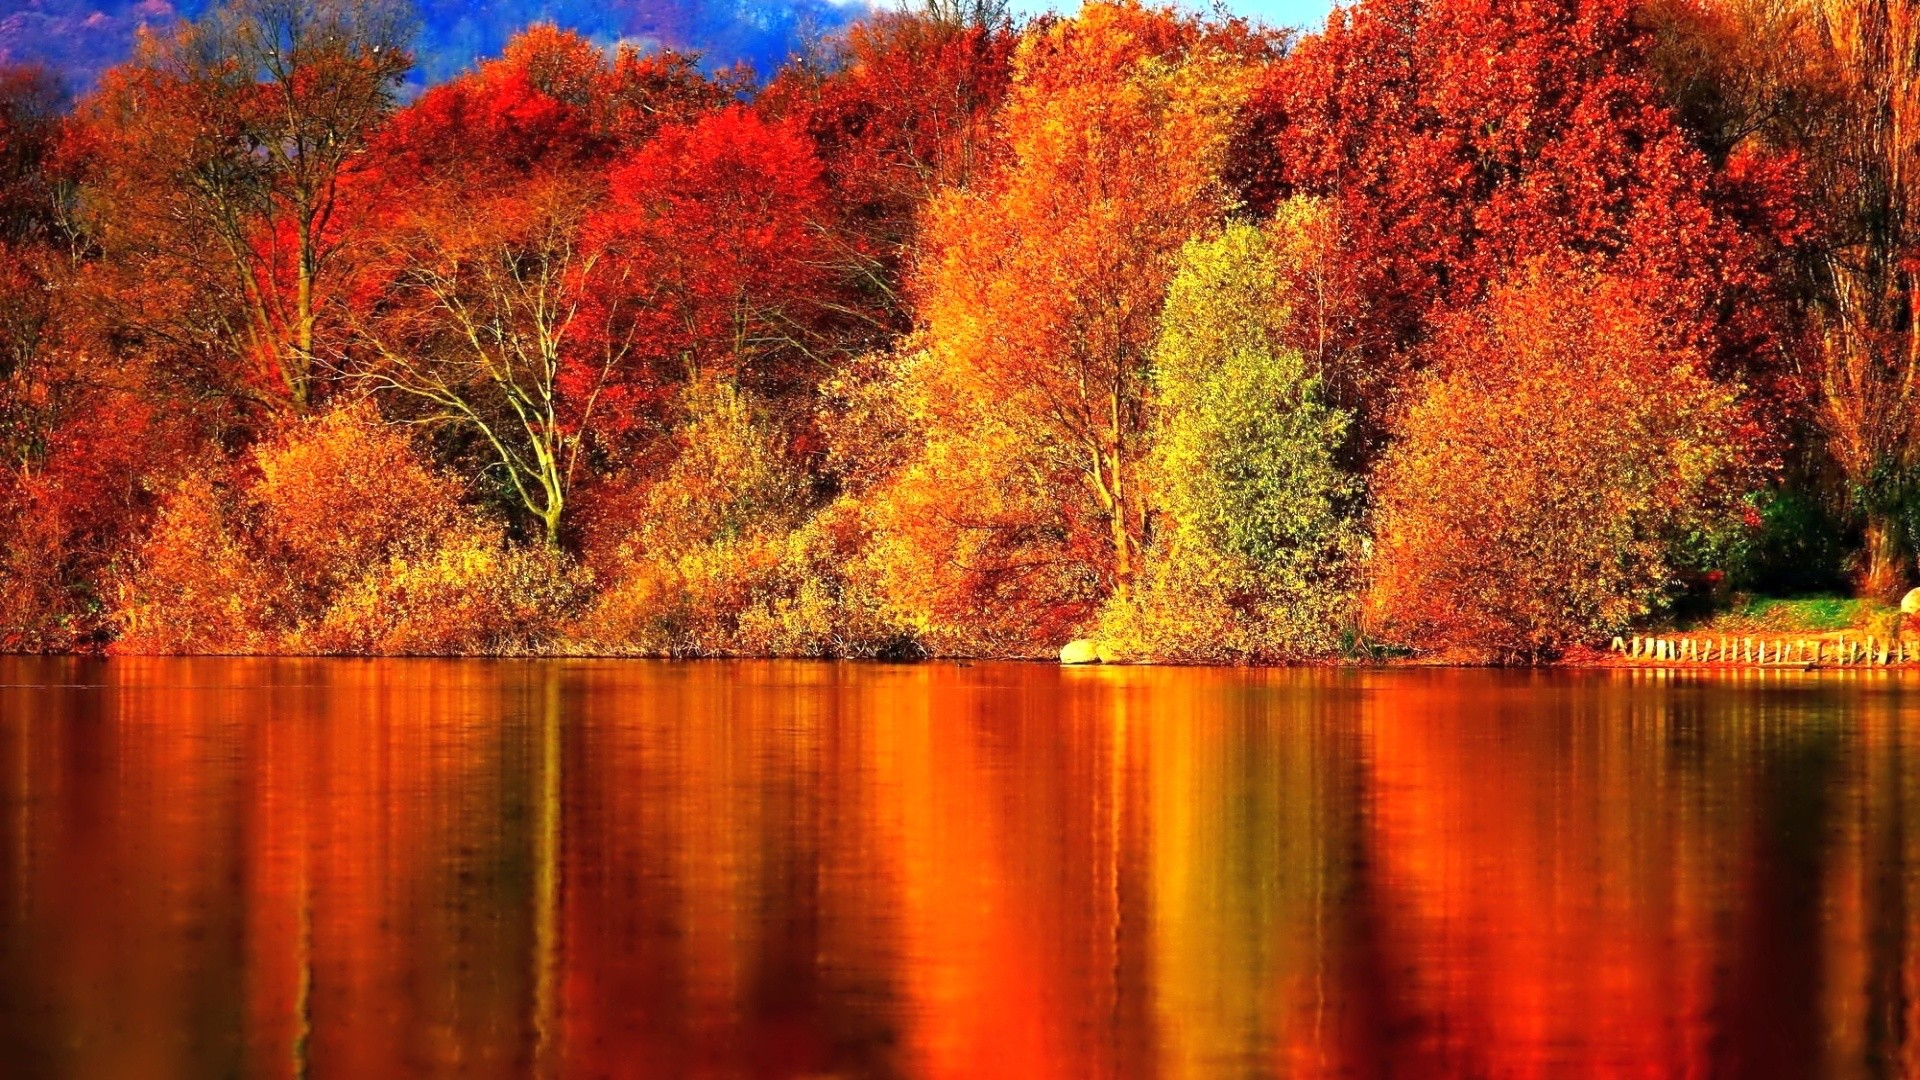 1920x1080 Autumn Wallpaper  - Wallpapers Browse ...